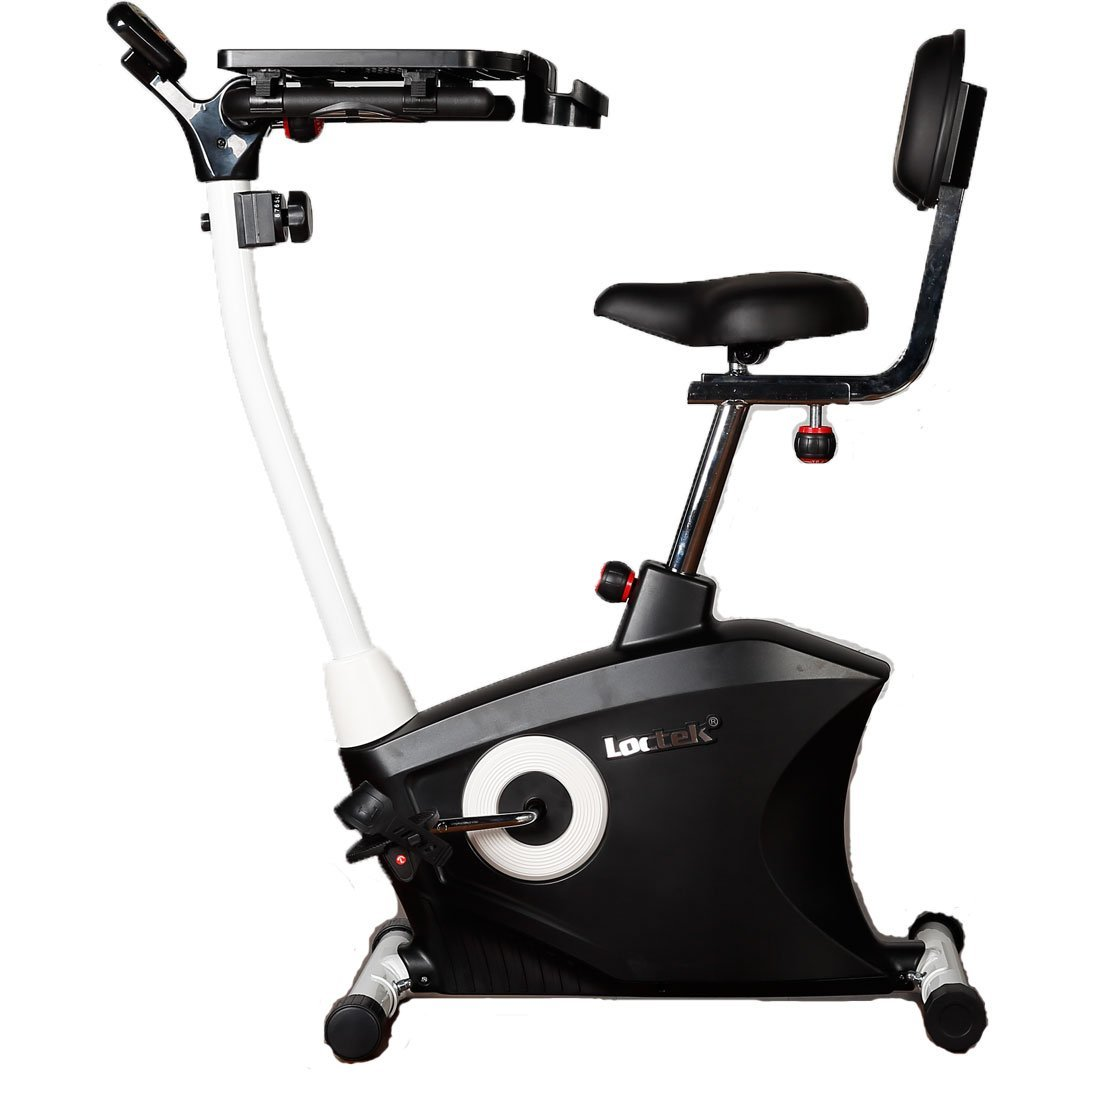 631724486be Get Quotations · Loctek Exercise bike Desk bike Office Cardio Indoor  Stationary Workstation Cycling with Laptop Upright bike